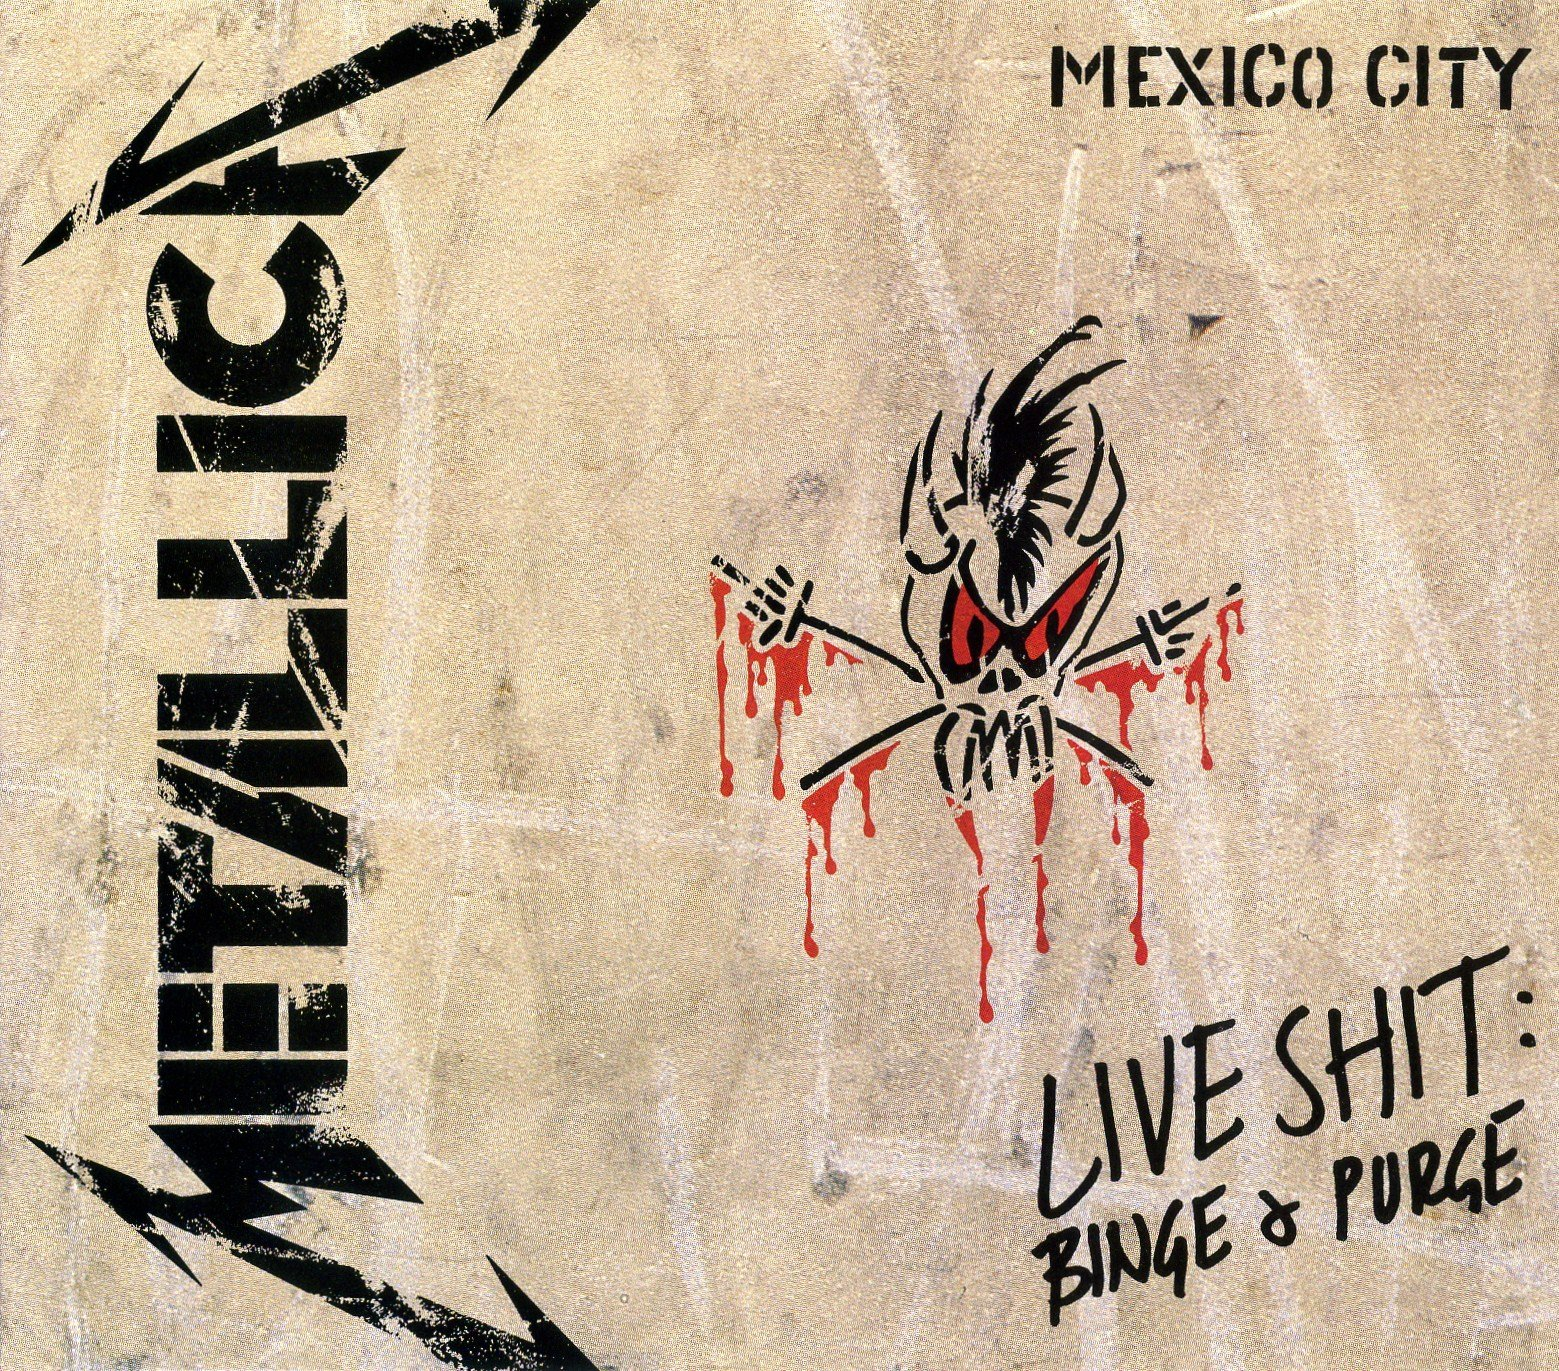 Live Shit Binge and Purge: Mexico City ONLY by Elektra